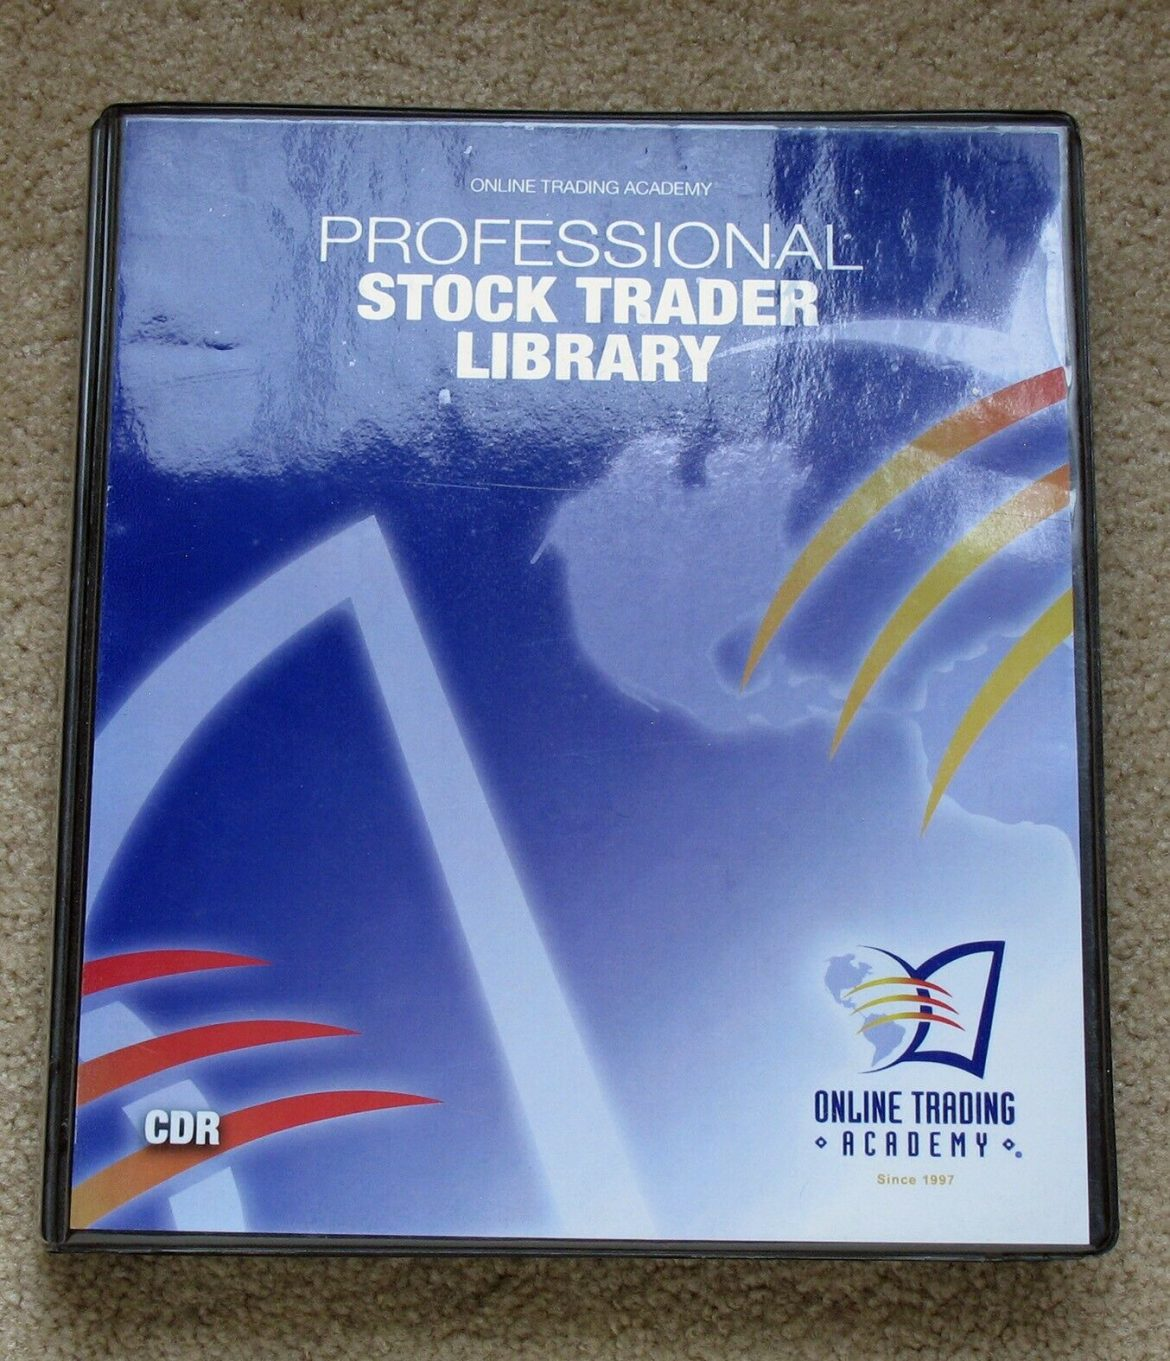 Online Trading Academy Professional Stock Trader Library 16 CD Set Inc. Options